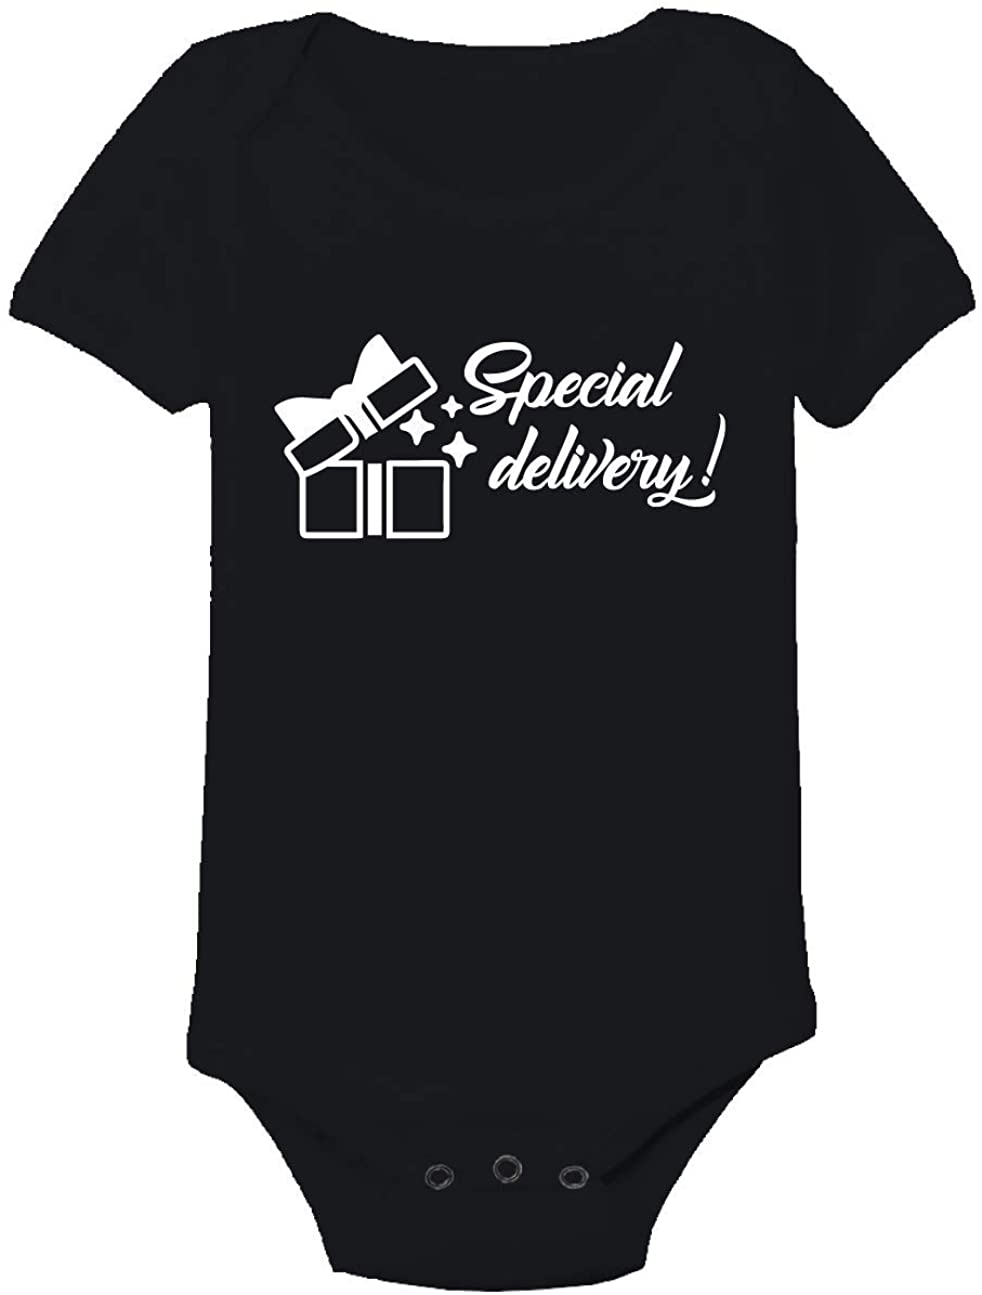 All Things Valuable One-Piece Special Delivery Baby Romper Outfit/Babies Toddler Fashion Clothes